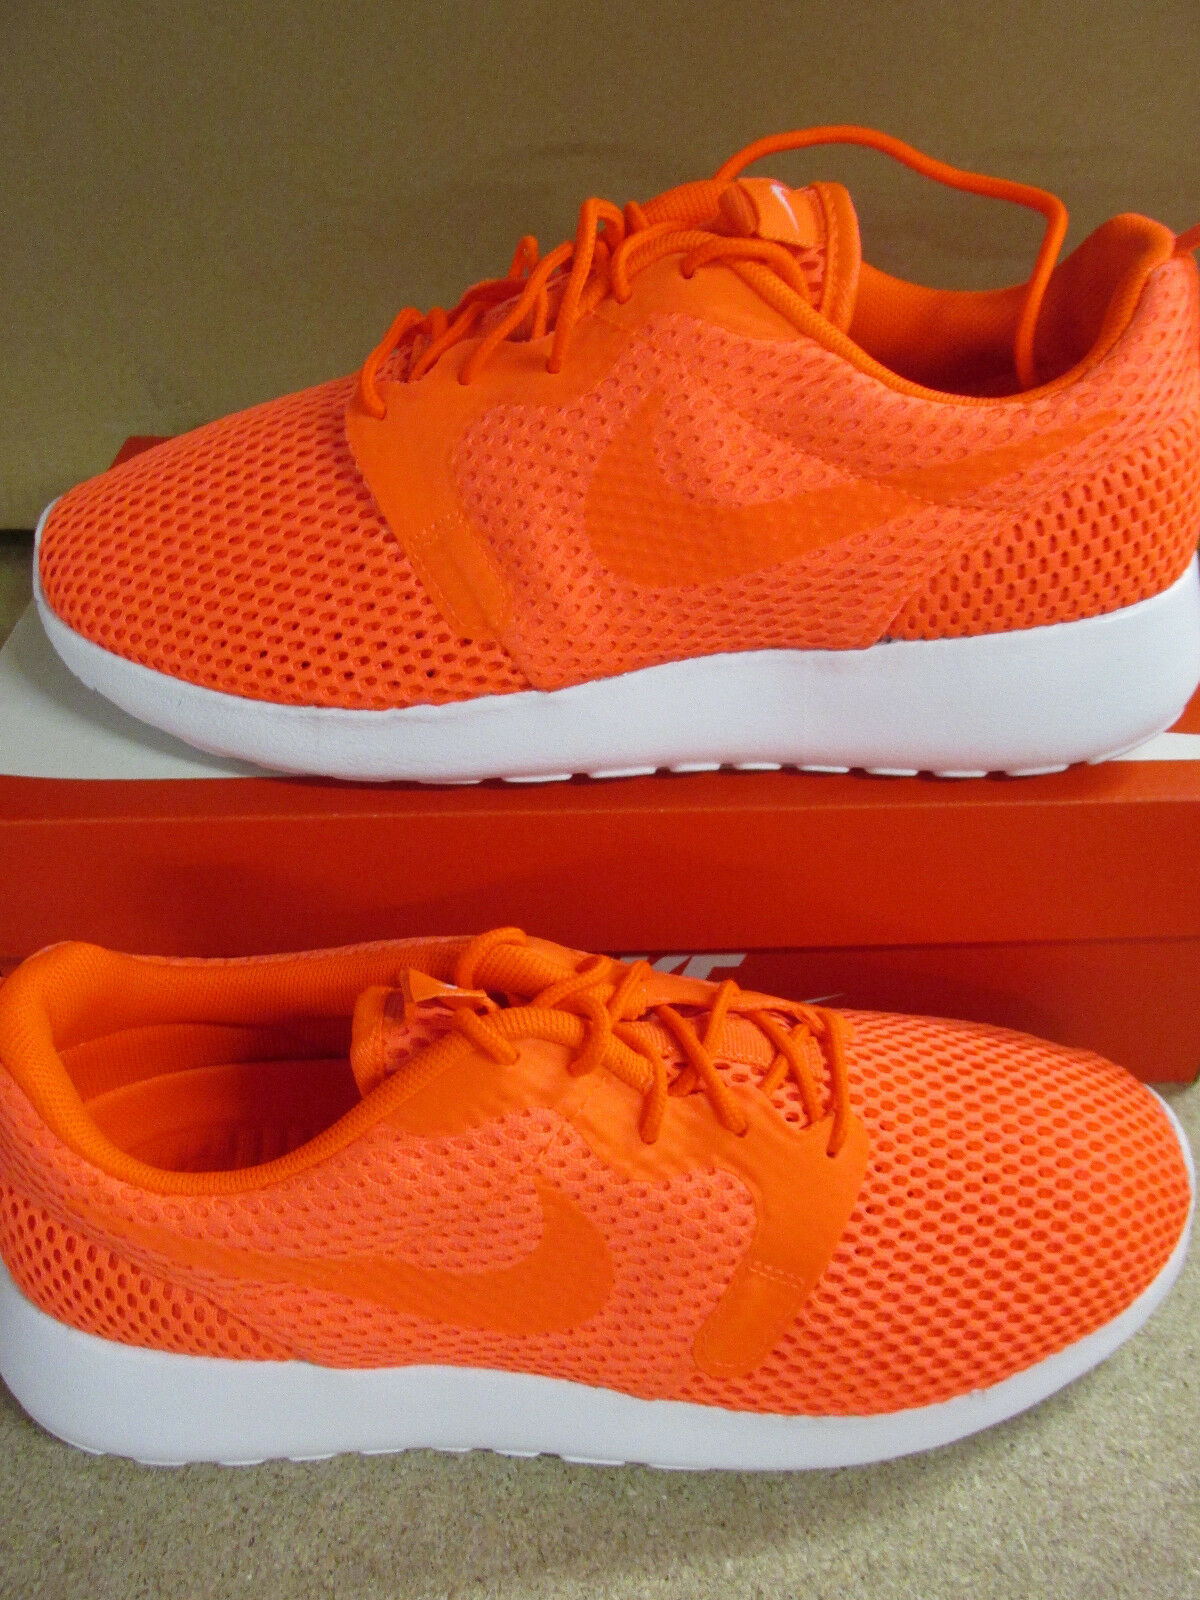 Nike Roshe One HYP BR Mens Trainers 833125 800 Sneakers Shoes